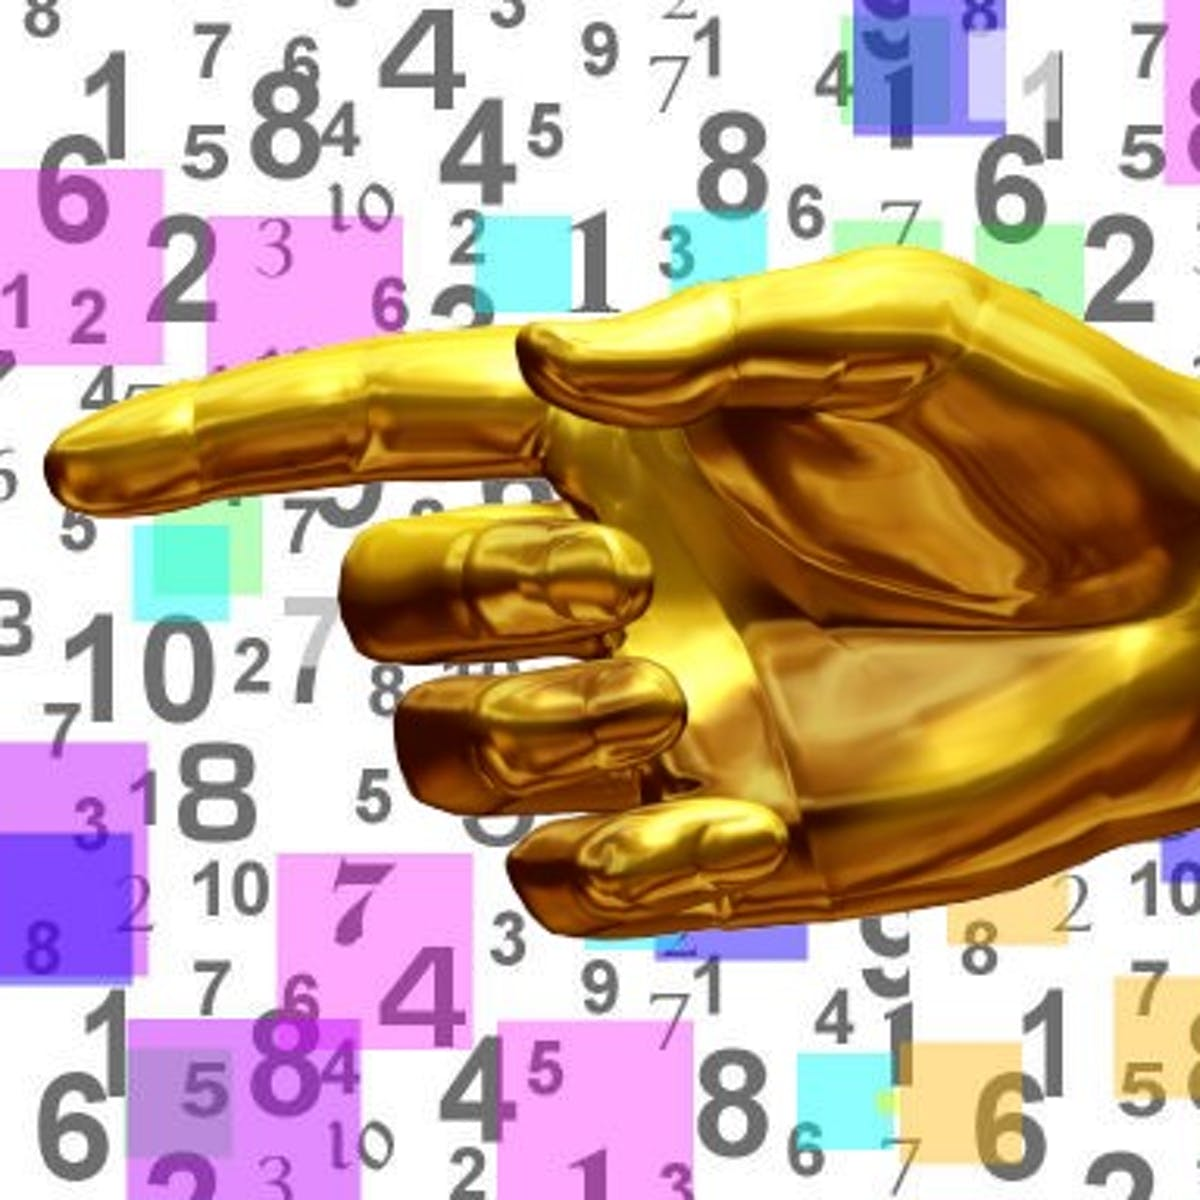 Six-fingered people exemplify why an extra digit means a better hand